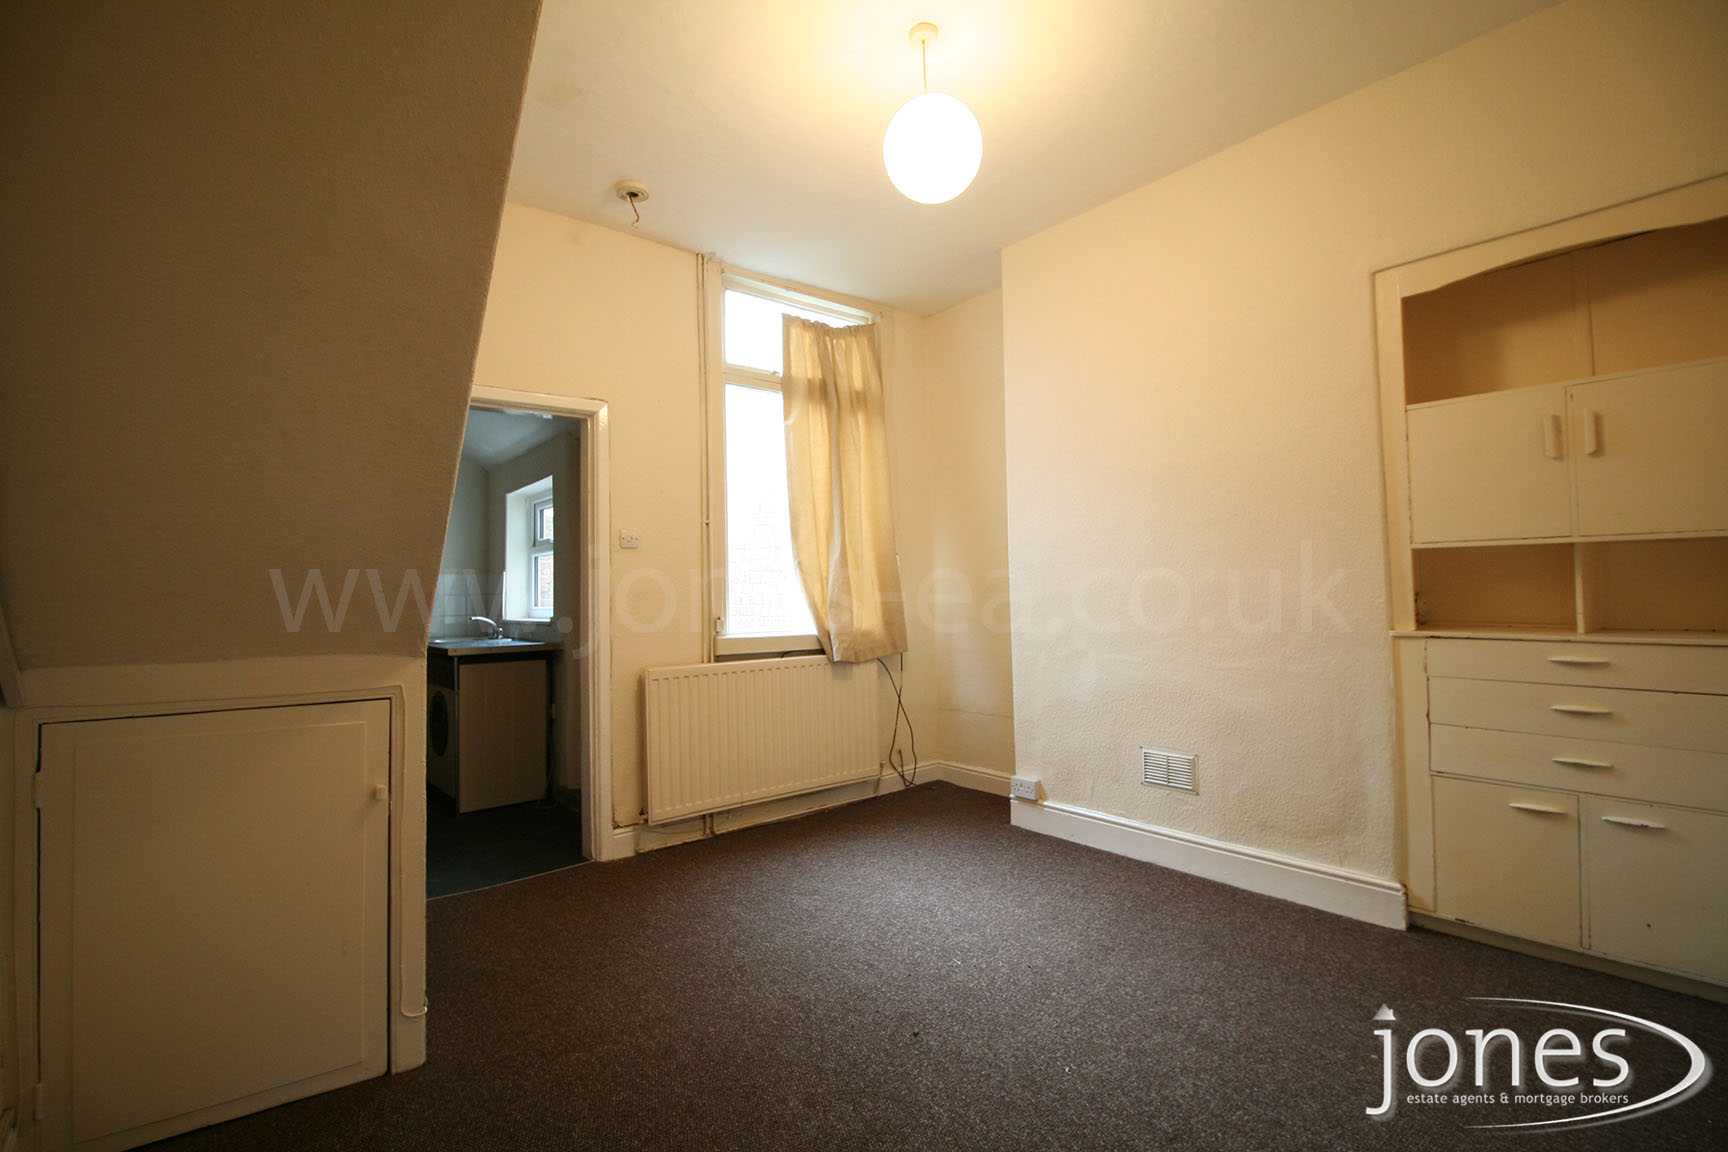 Home for Sale Let - Photo 02 Percy Street   Middlesbrough TS1 4DD